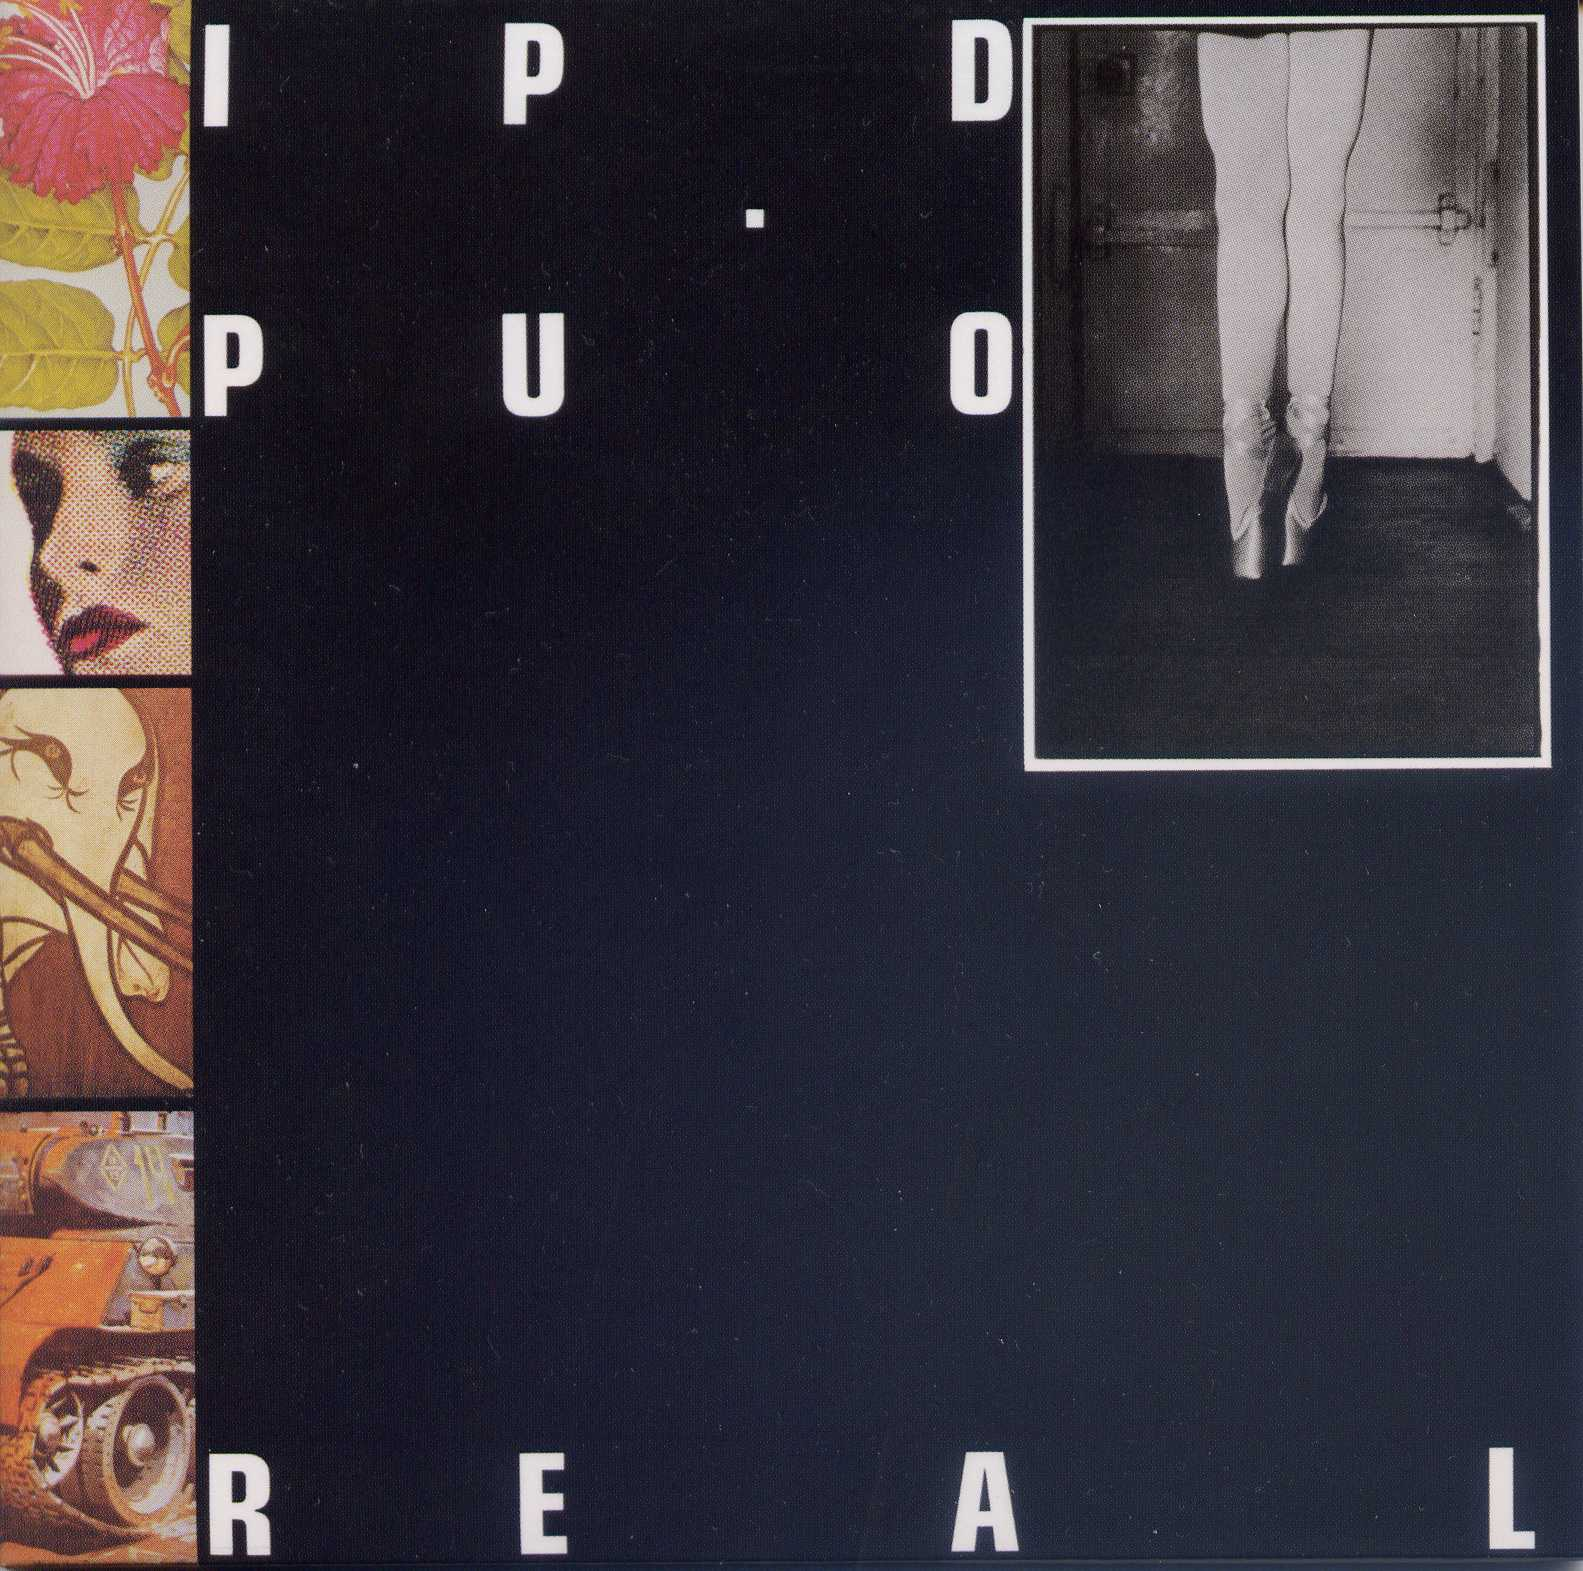 Ippu-Do - Real (1980)   Home   80's on Speed   The home of